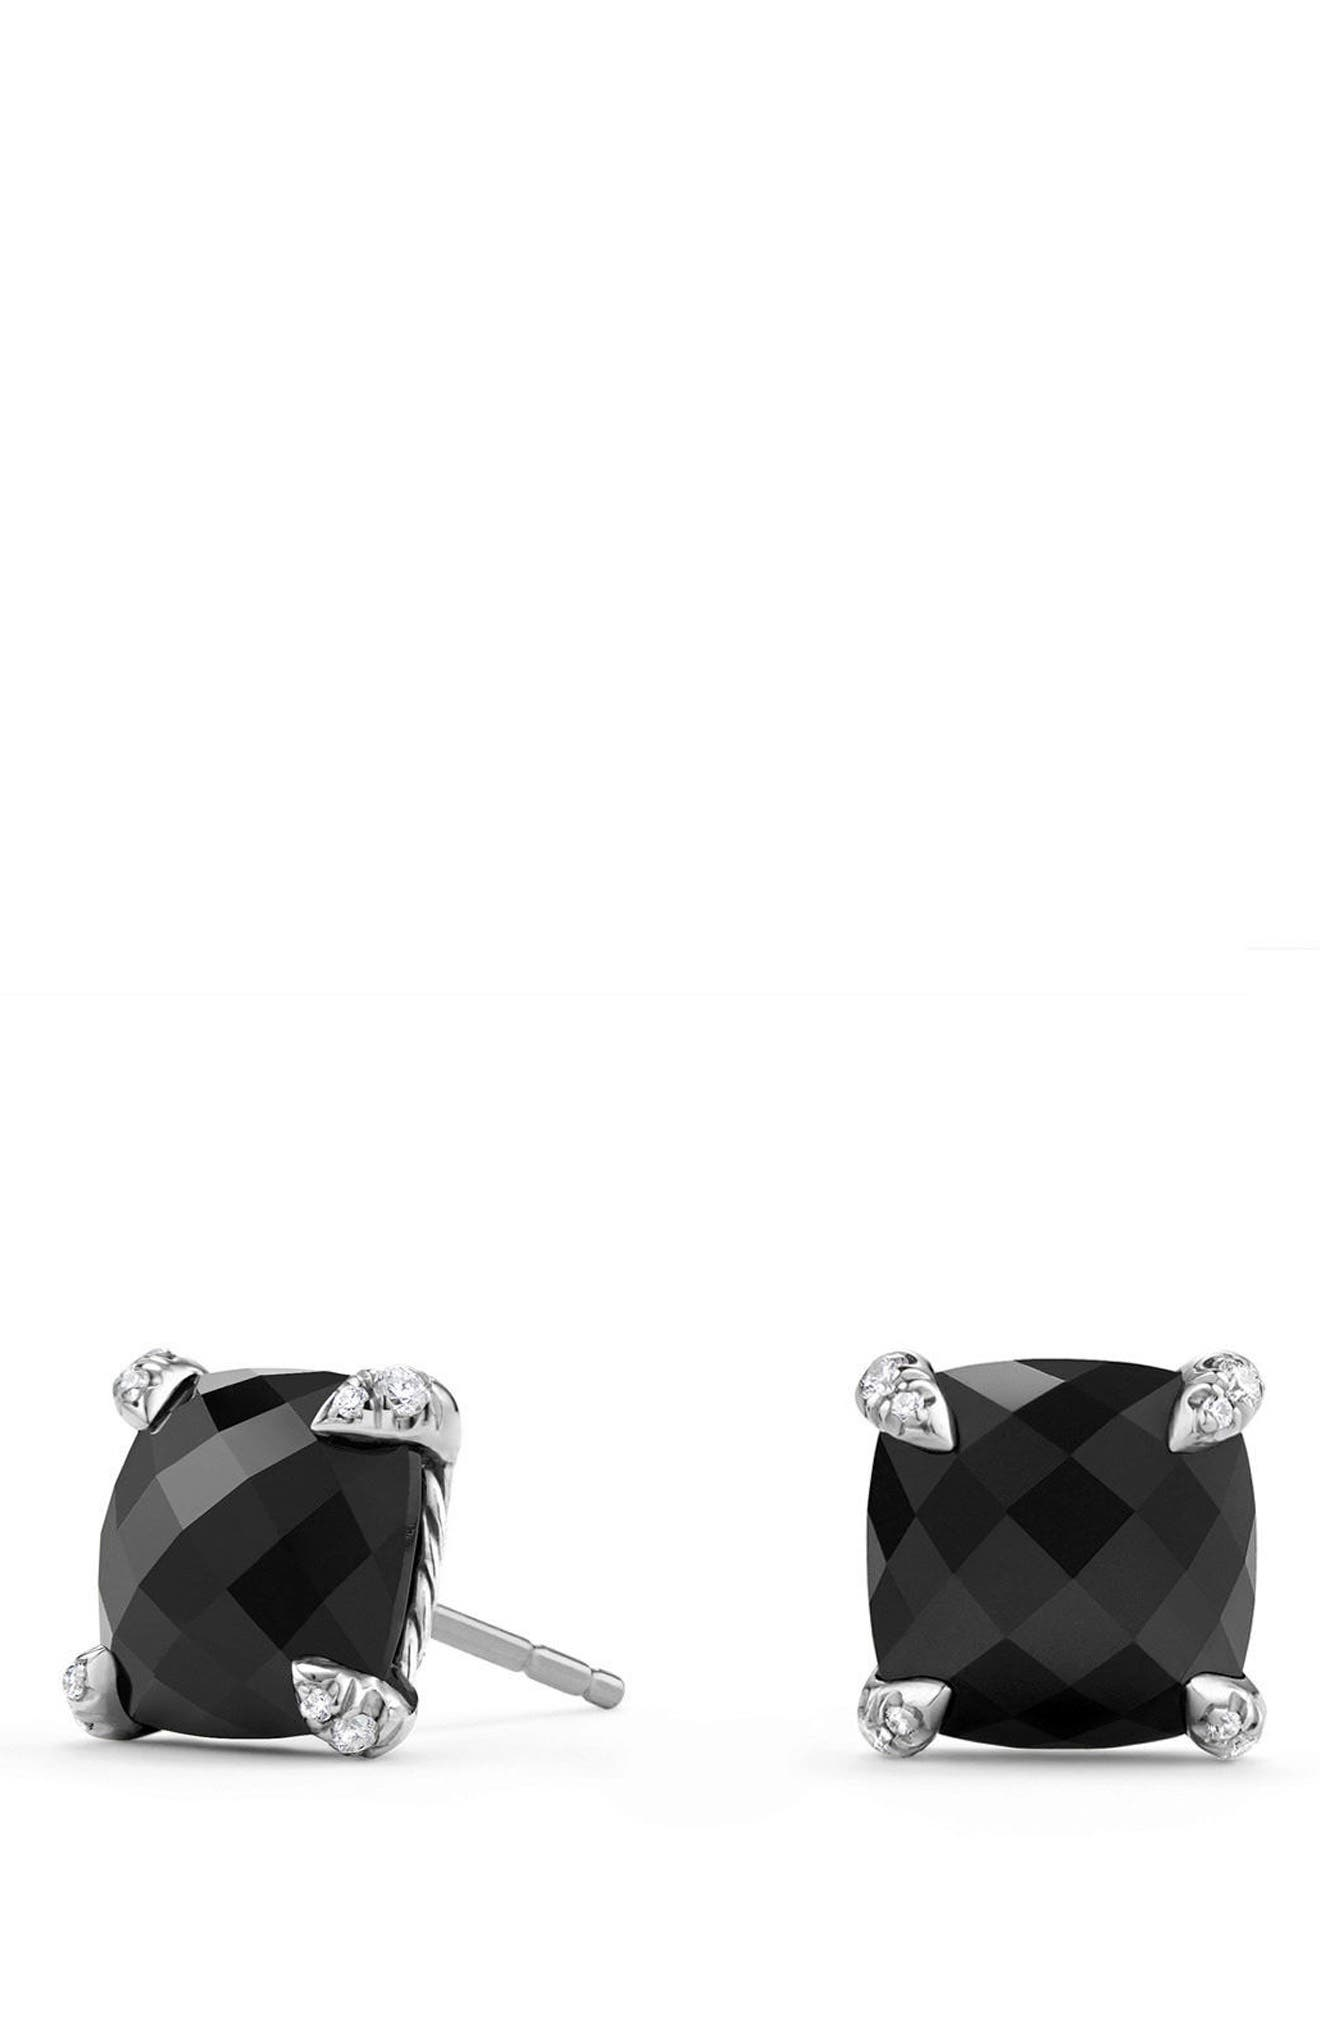 Châtelaine Earrings with Diamonds,                         Main,                         color, Black Onyx